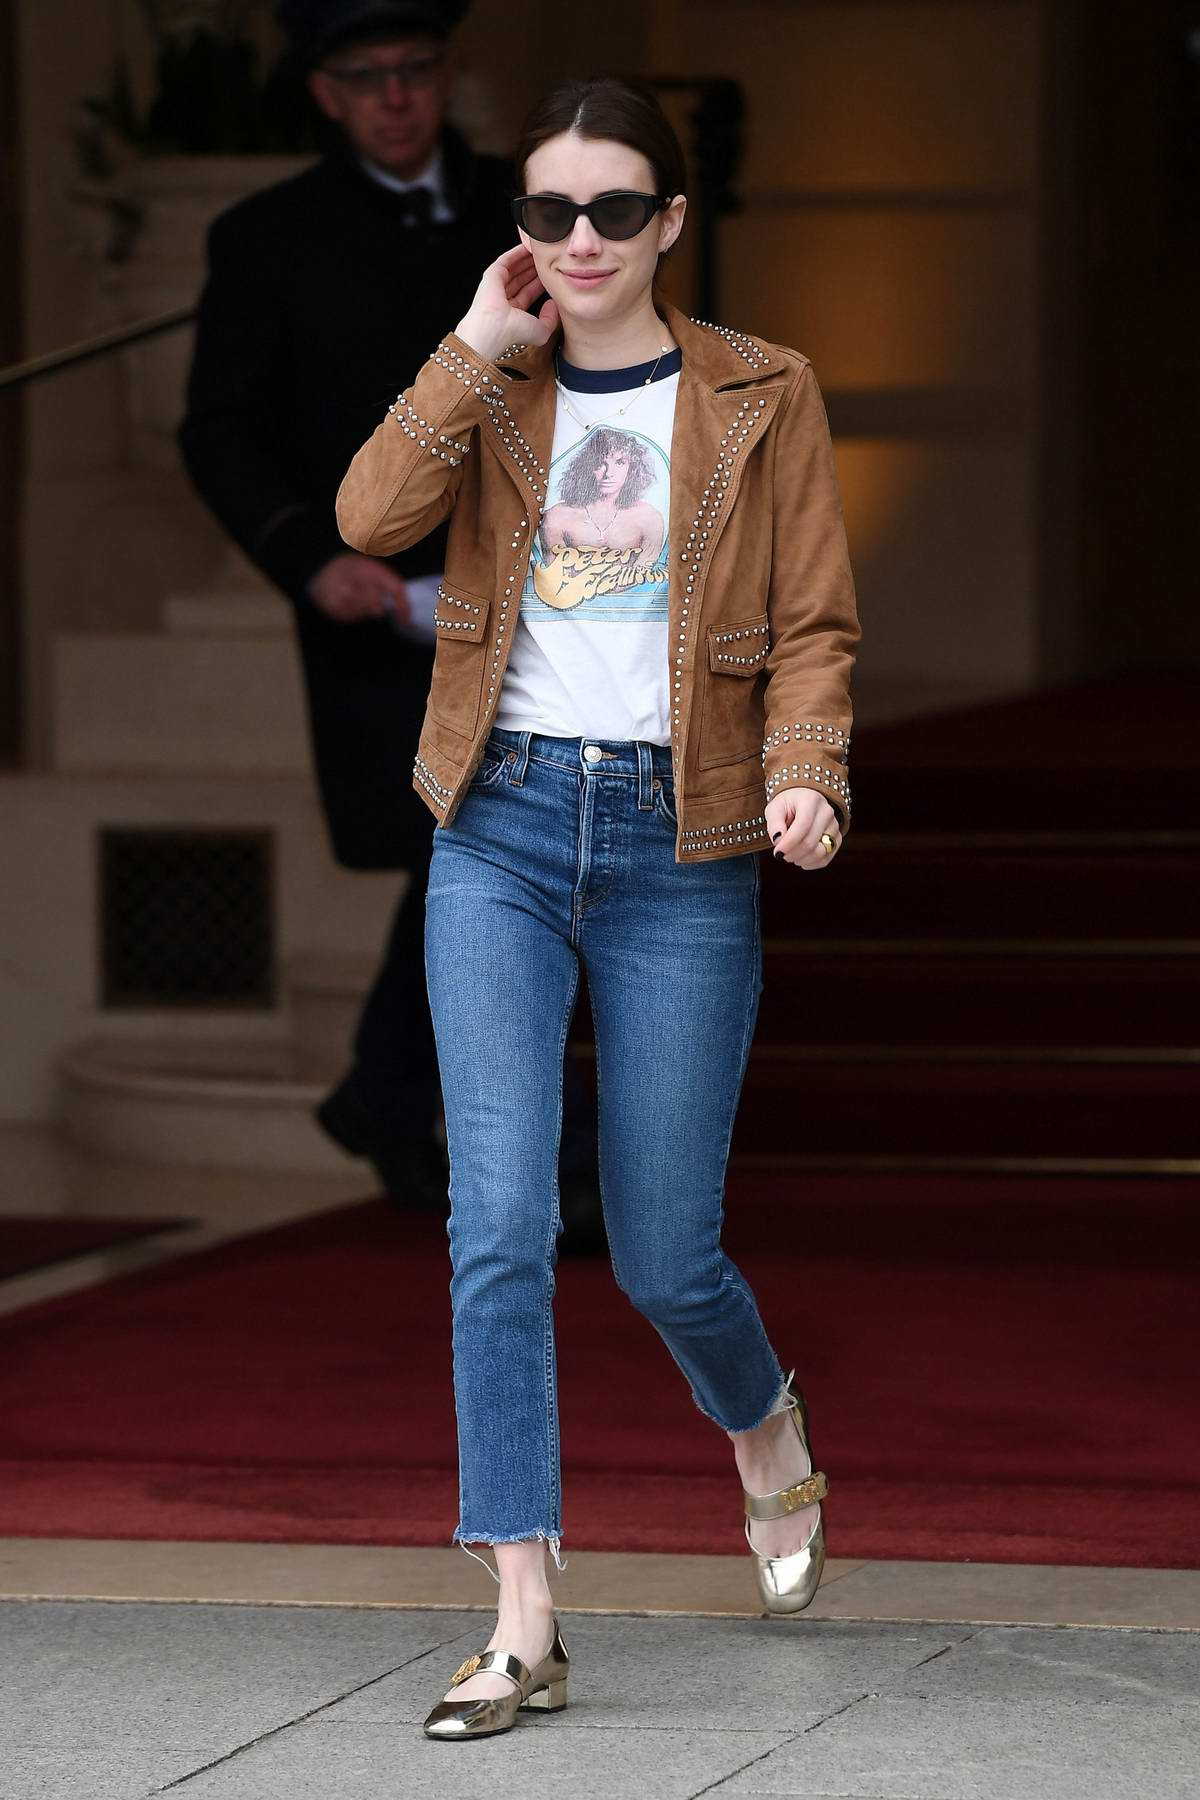 Emma Roberts looks lovely in a brown jacket and blue jeans as she leaves the Ritz Hotel in Paris, France